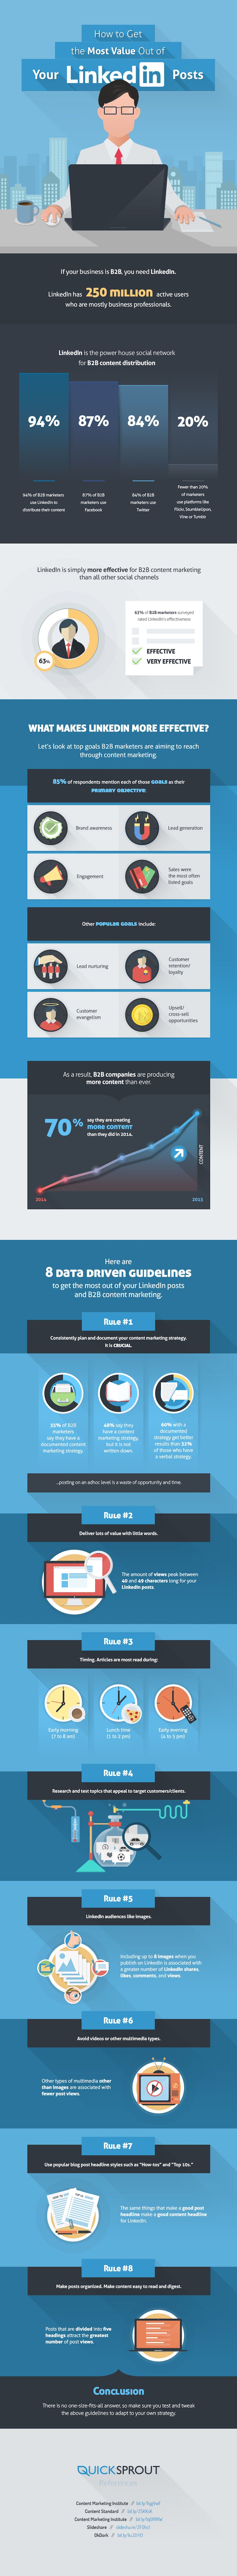 How to Get the Most Value out of Your LinkedIn Posts #infographic